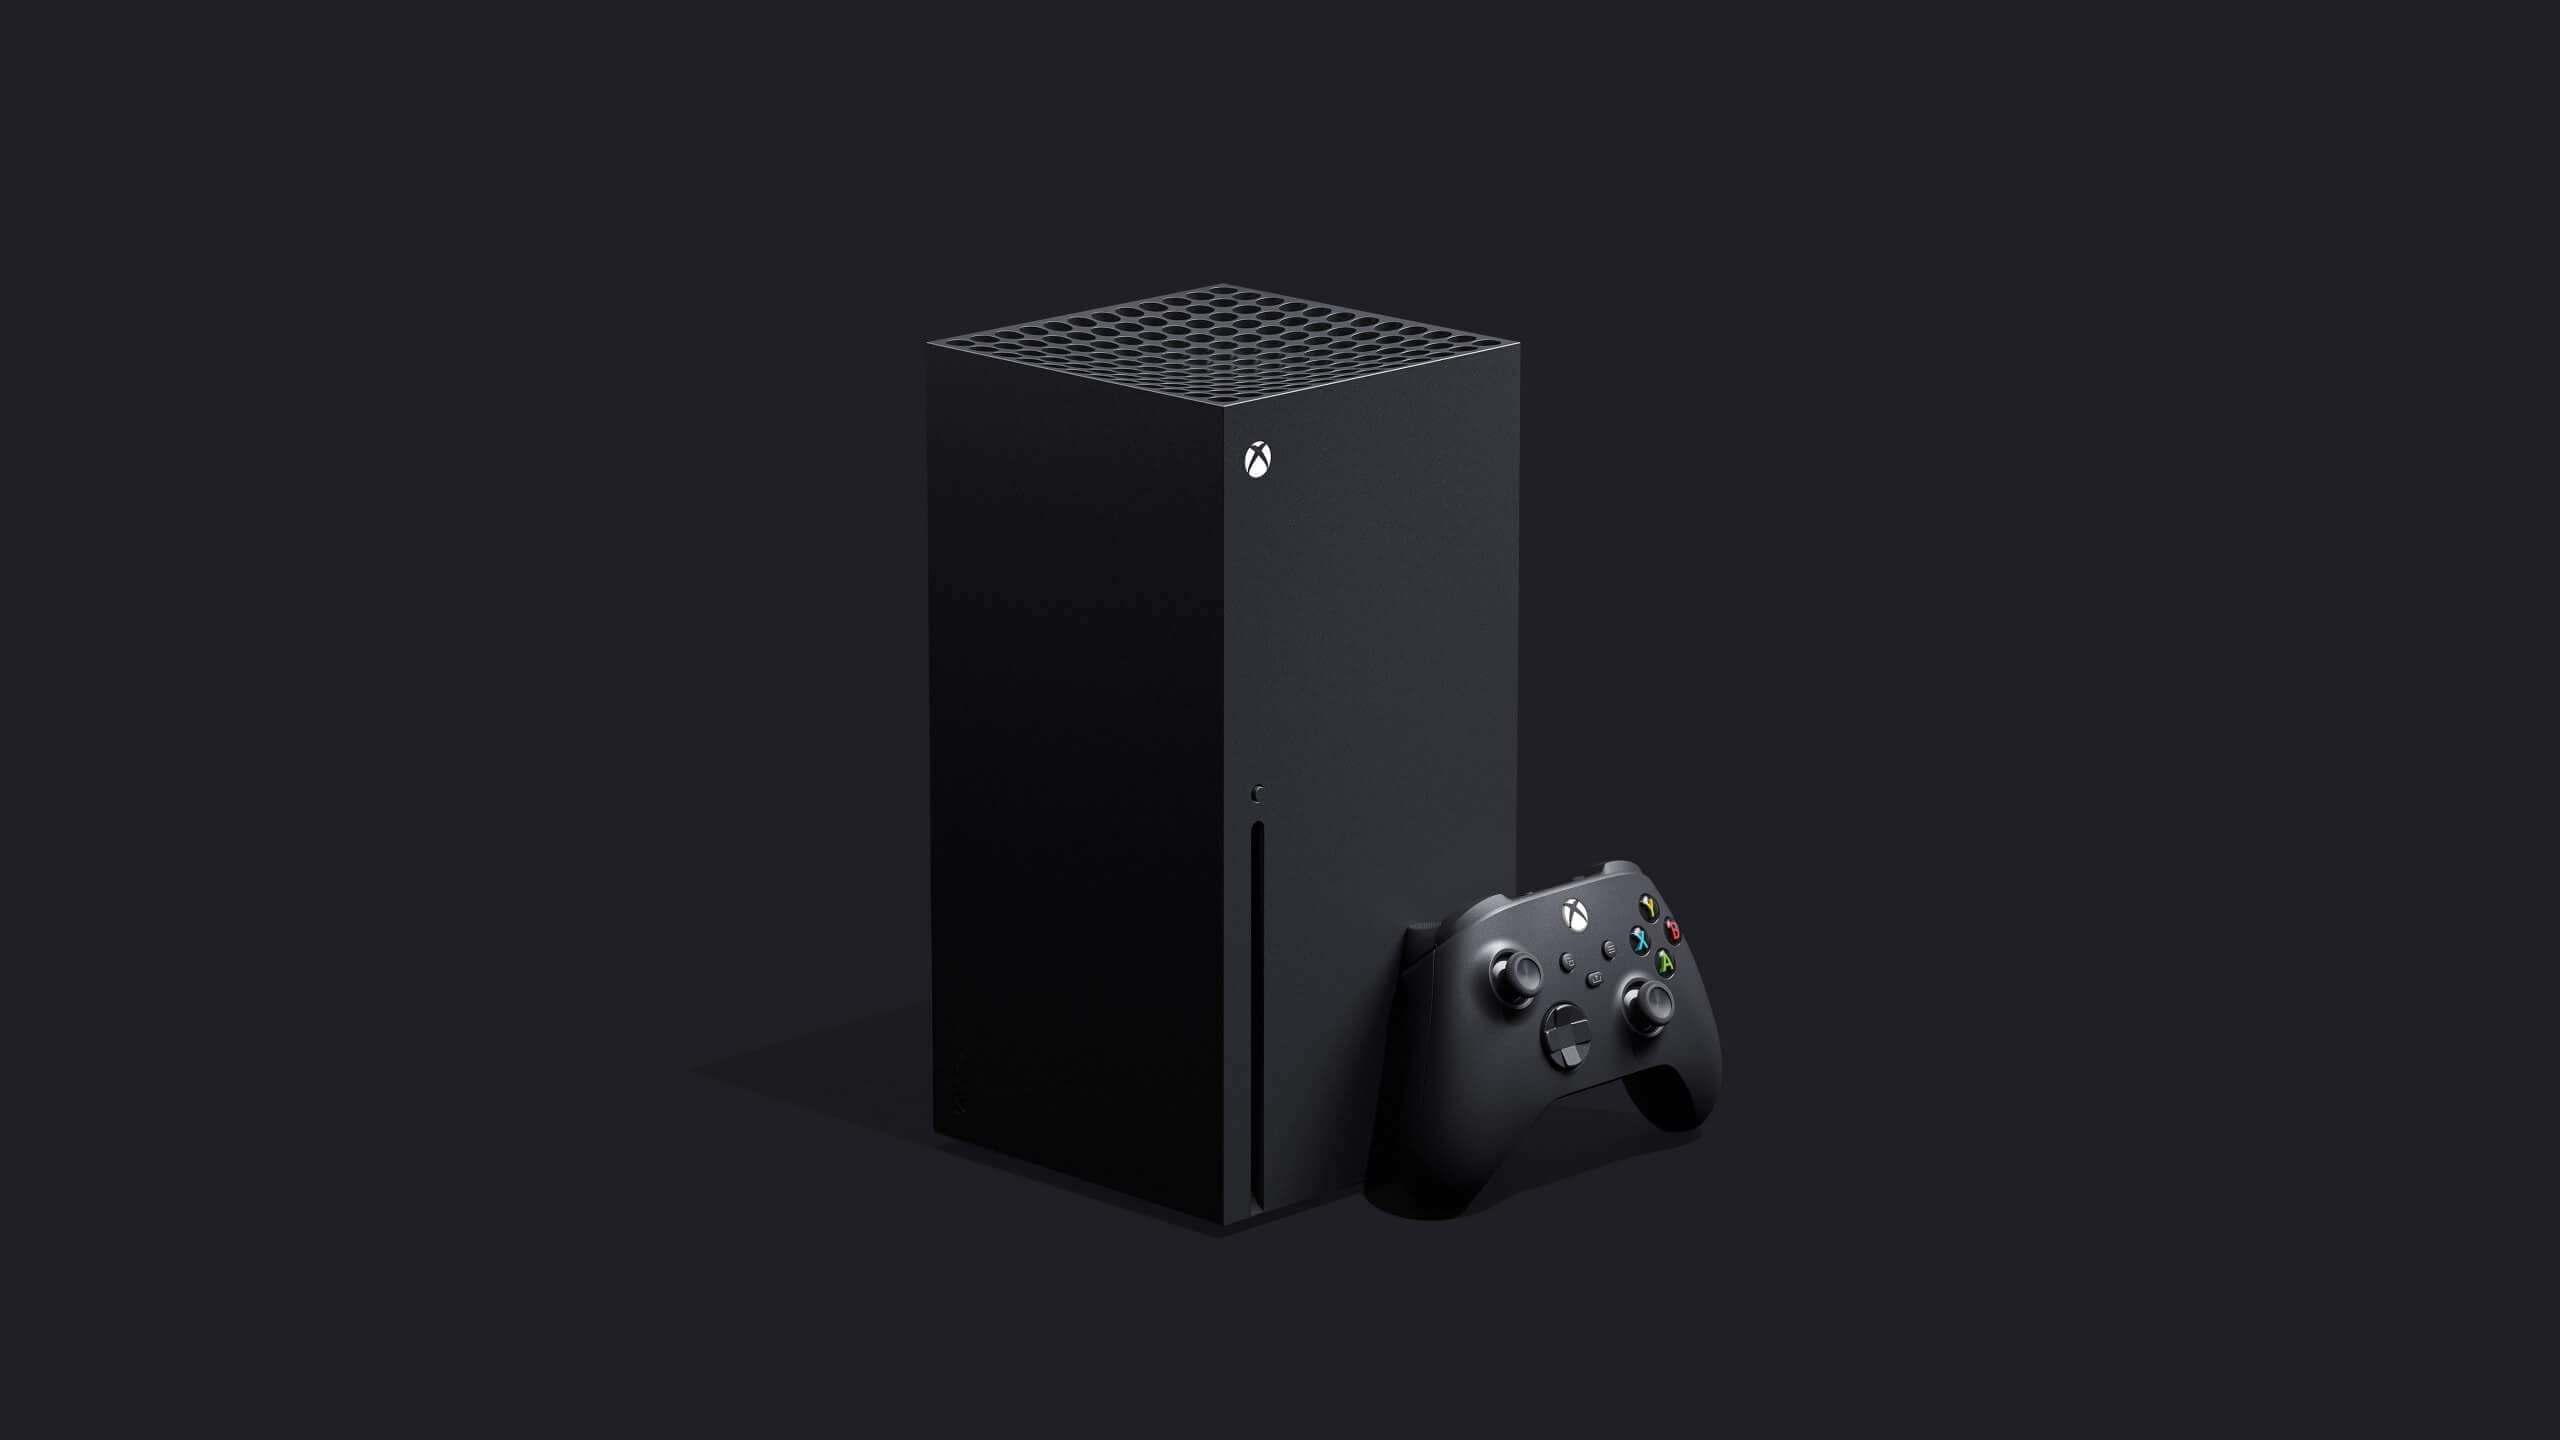 Redditor leaks image of a white Xbox Series X controller then disappears